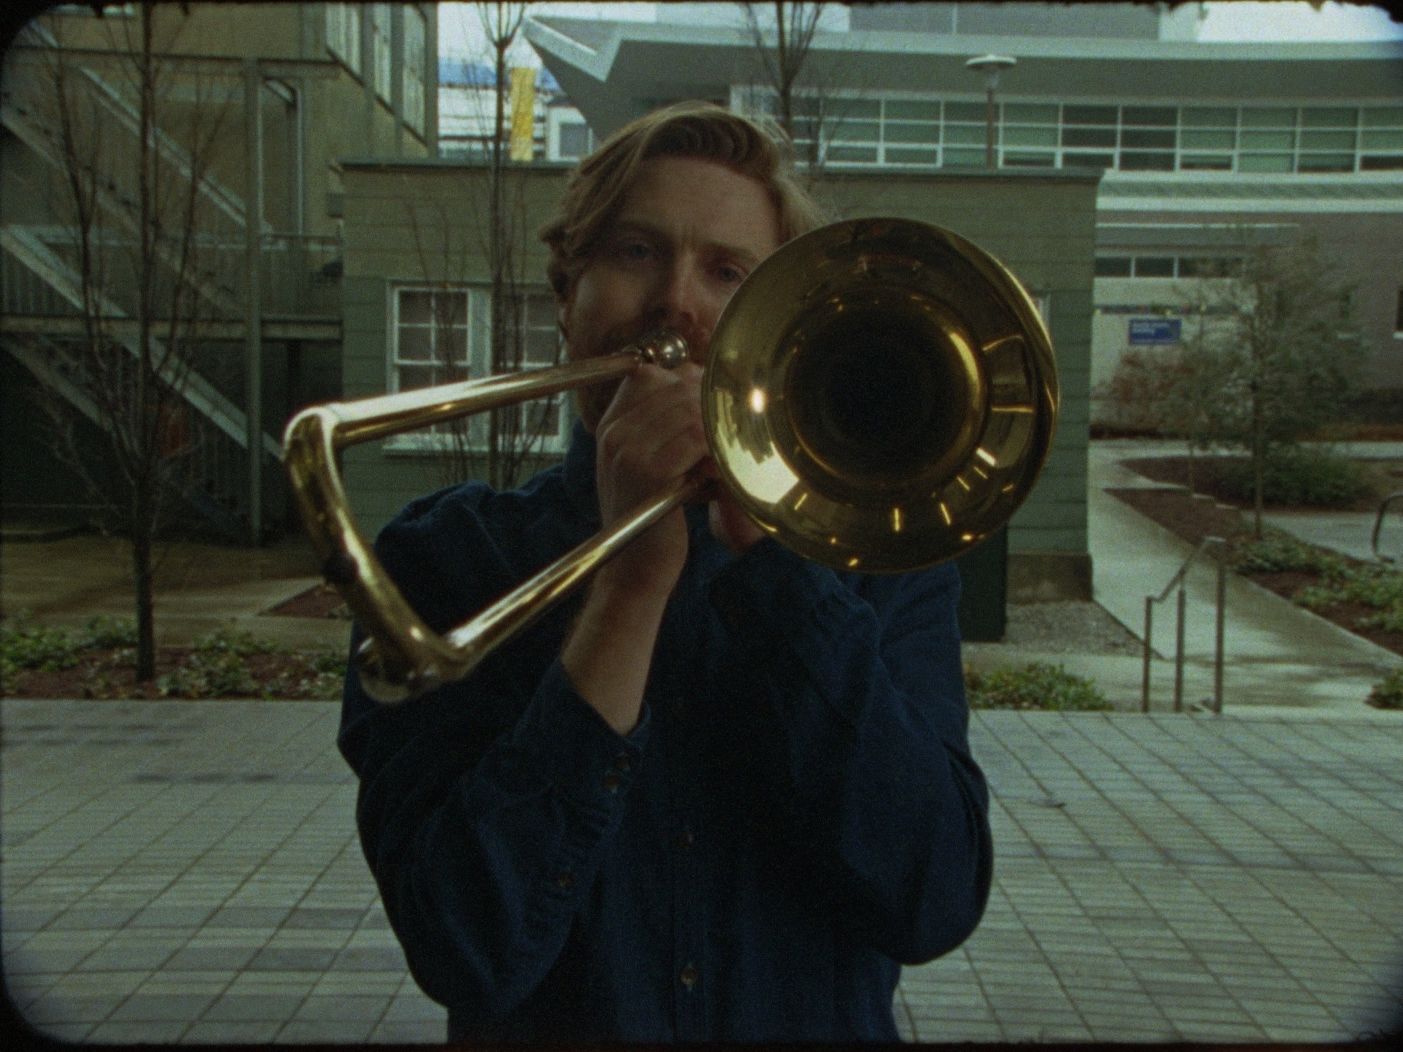 Etude      B     rian Lye   2017 |3 minutes | Canada |16mm | color |sound | international premiere  A trombonist and a dolly zoom. Questionable suspense and the sound of morning fog. Etude plays with film history, repetition, and a special effect that lacks a narrative home. -BL